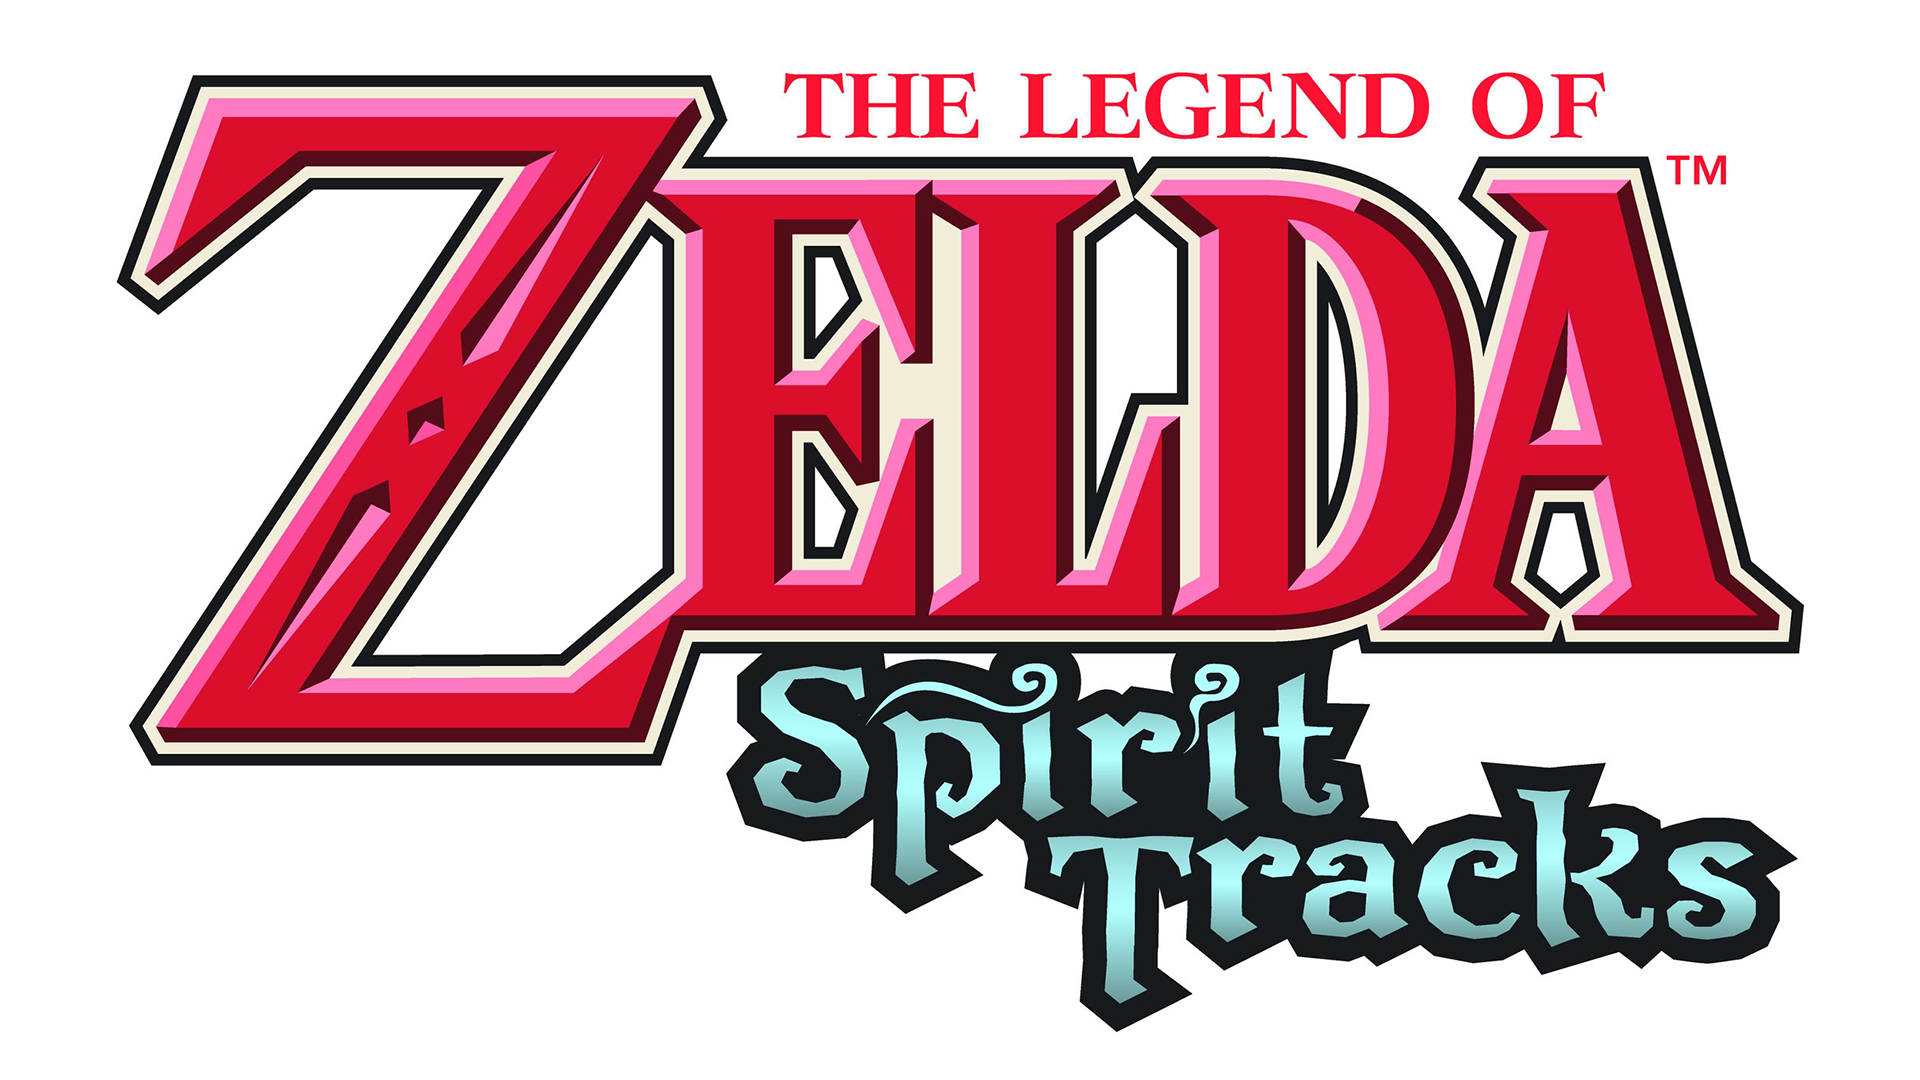 The Legend of Zelda: Spirit Tracks Logo